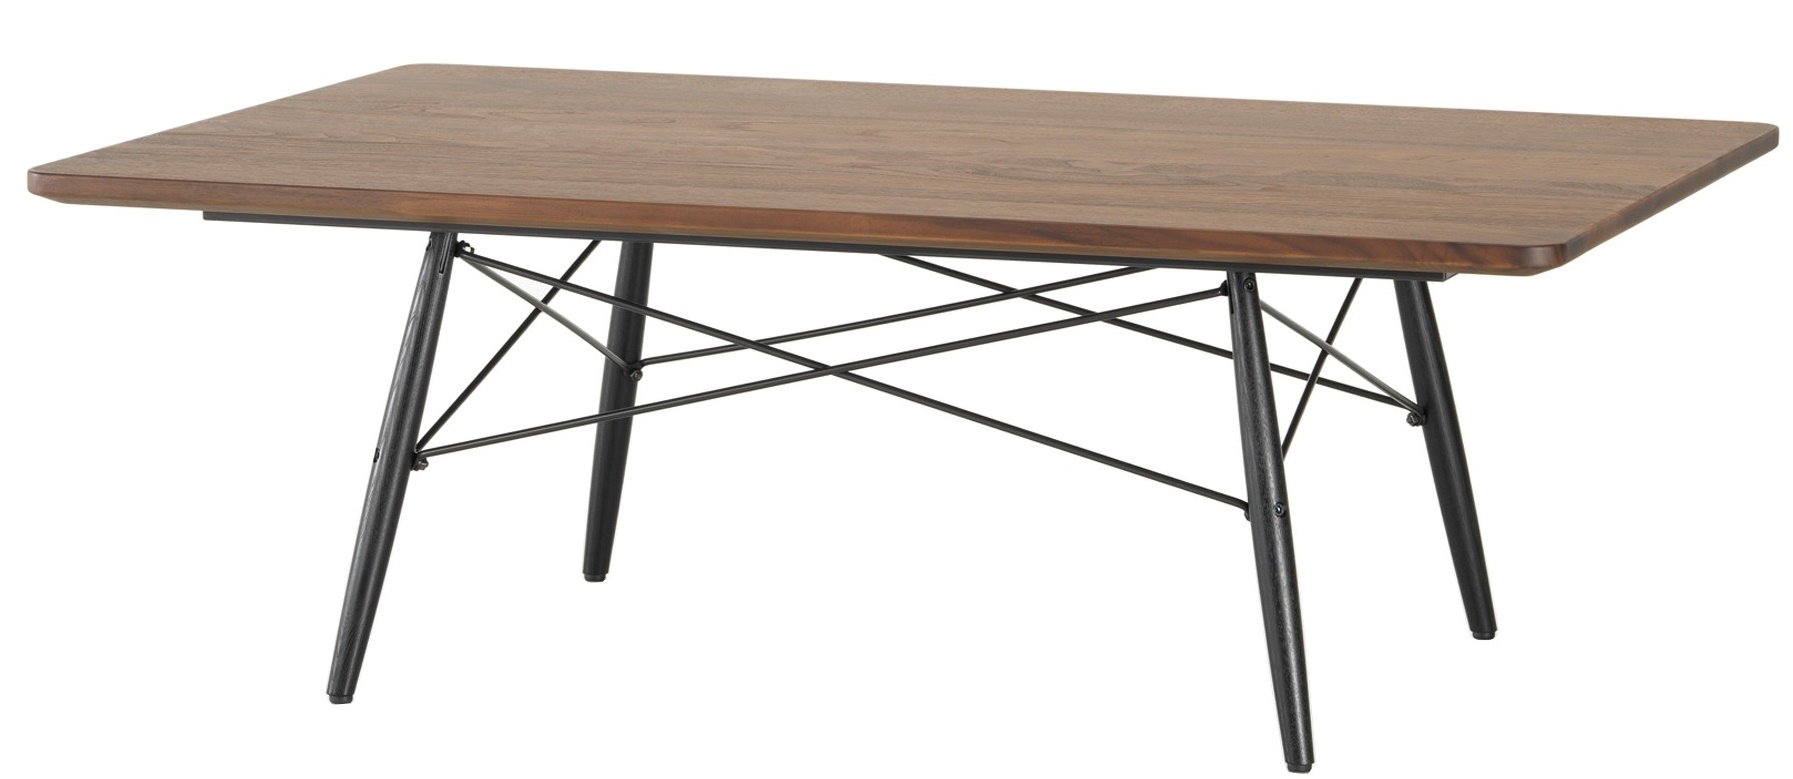 Eames Coffee Table Vitra Couchtisch